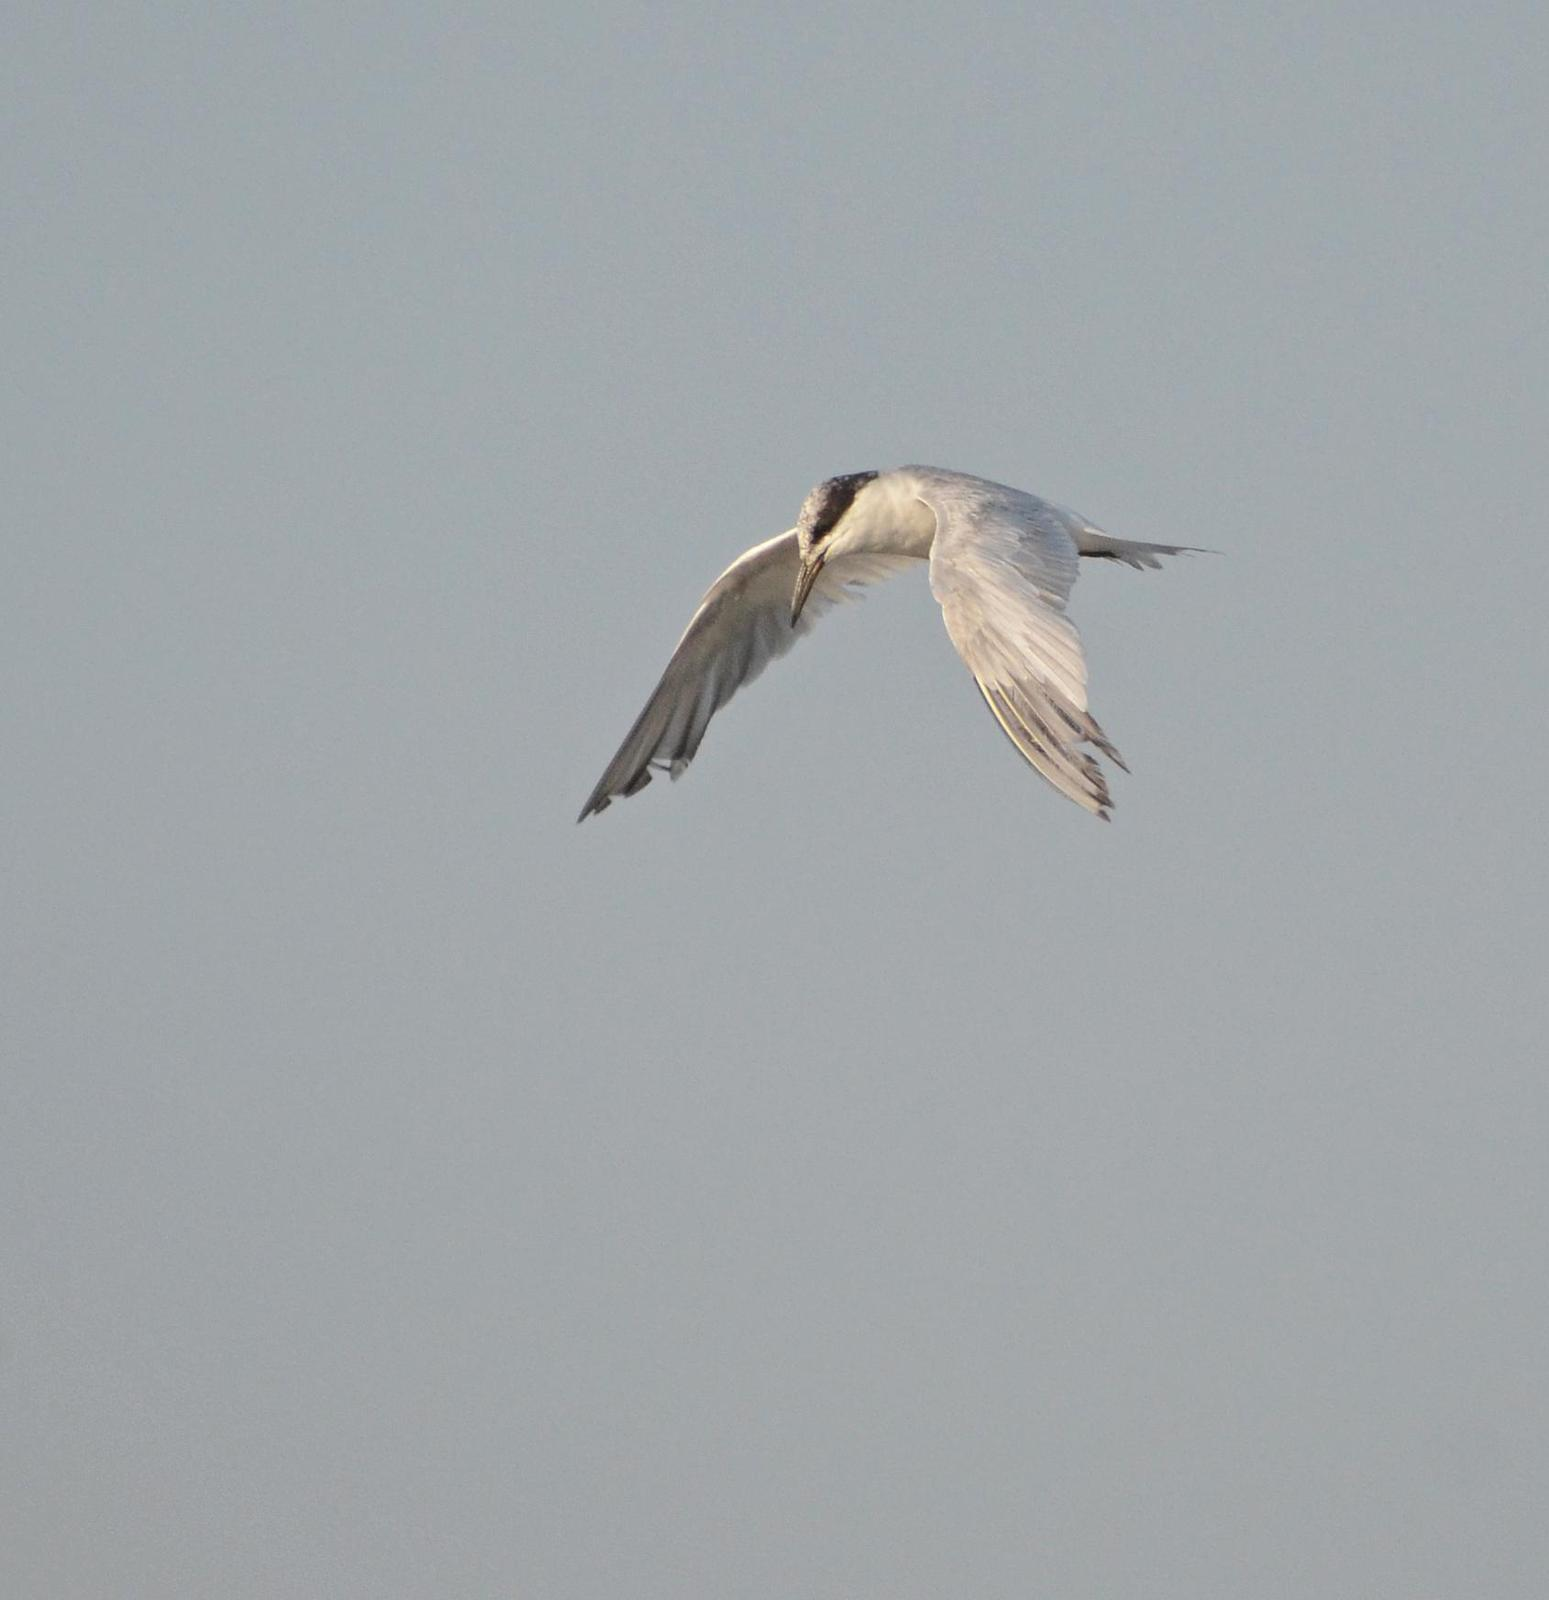 Forster's Tern Photo by Steven Mlodinow